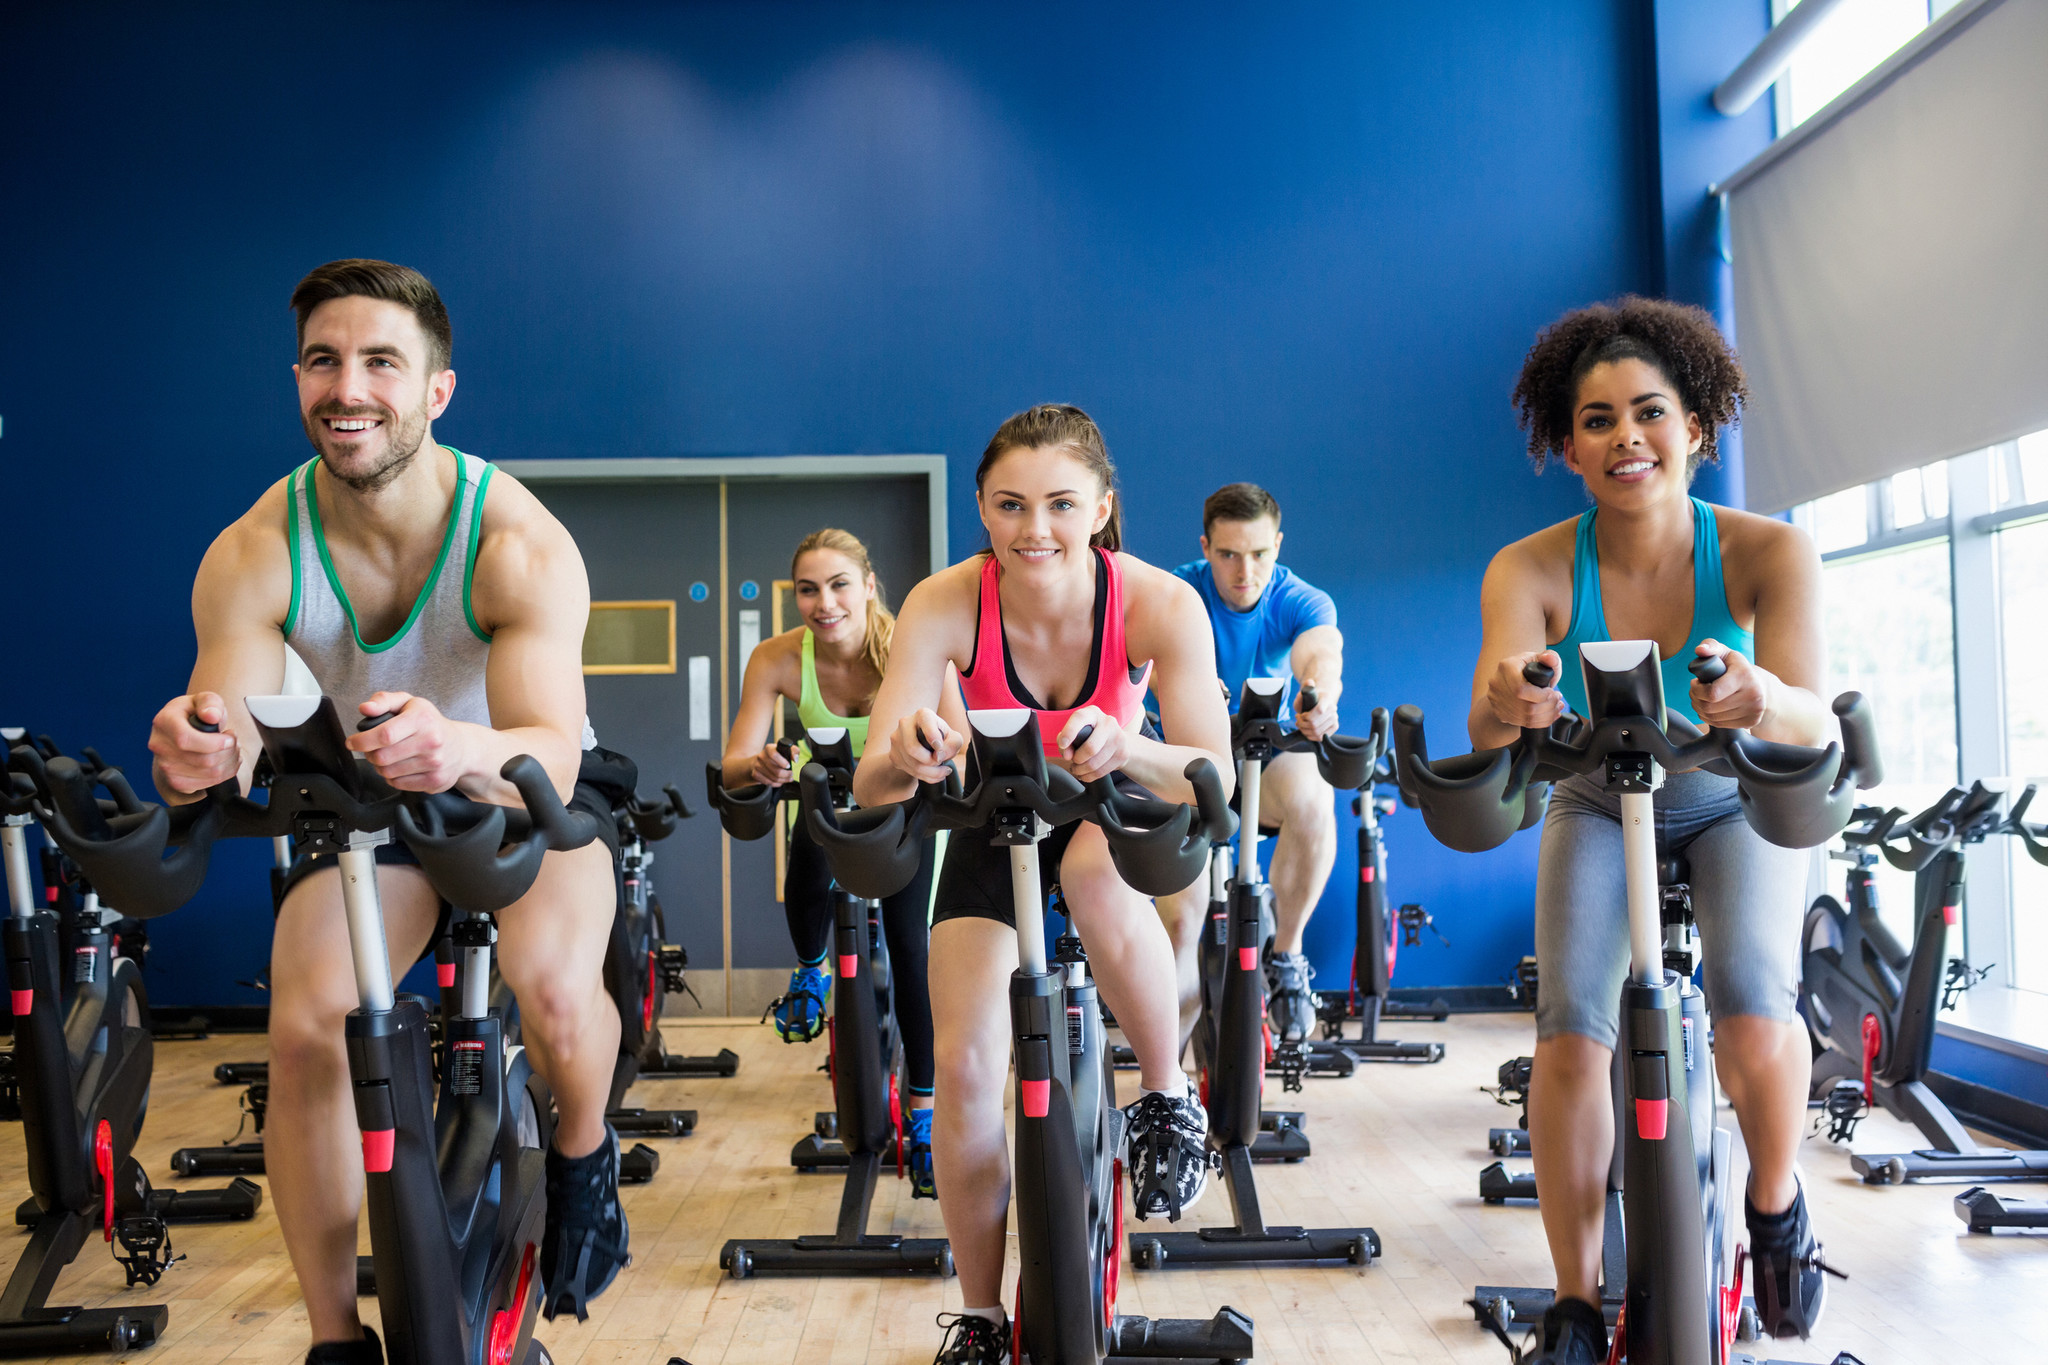 The 20 unwritten rules of spin class